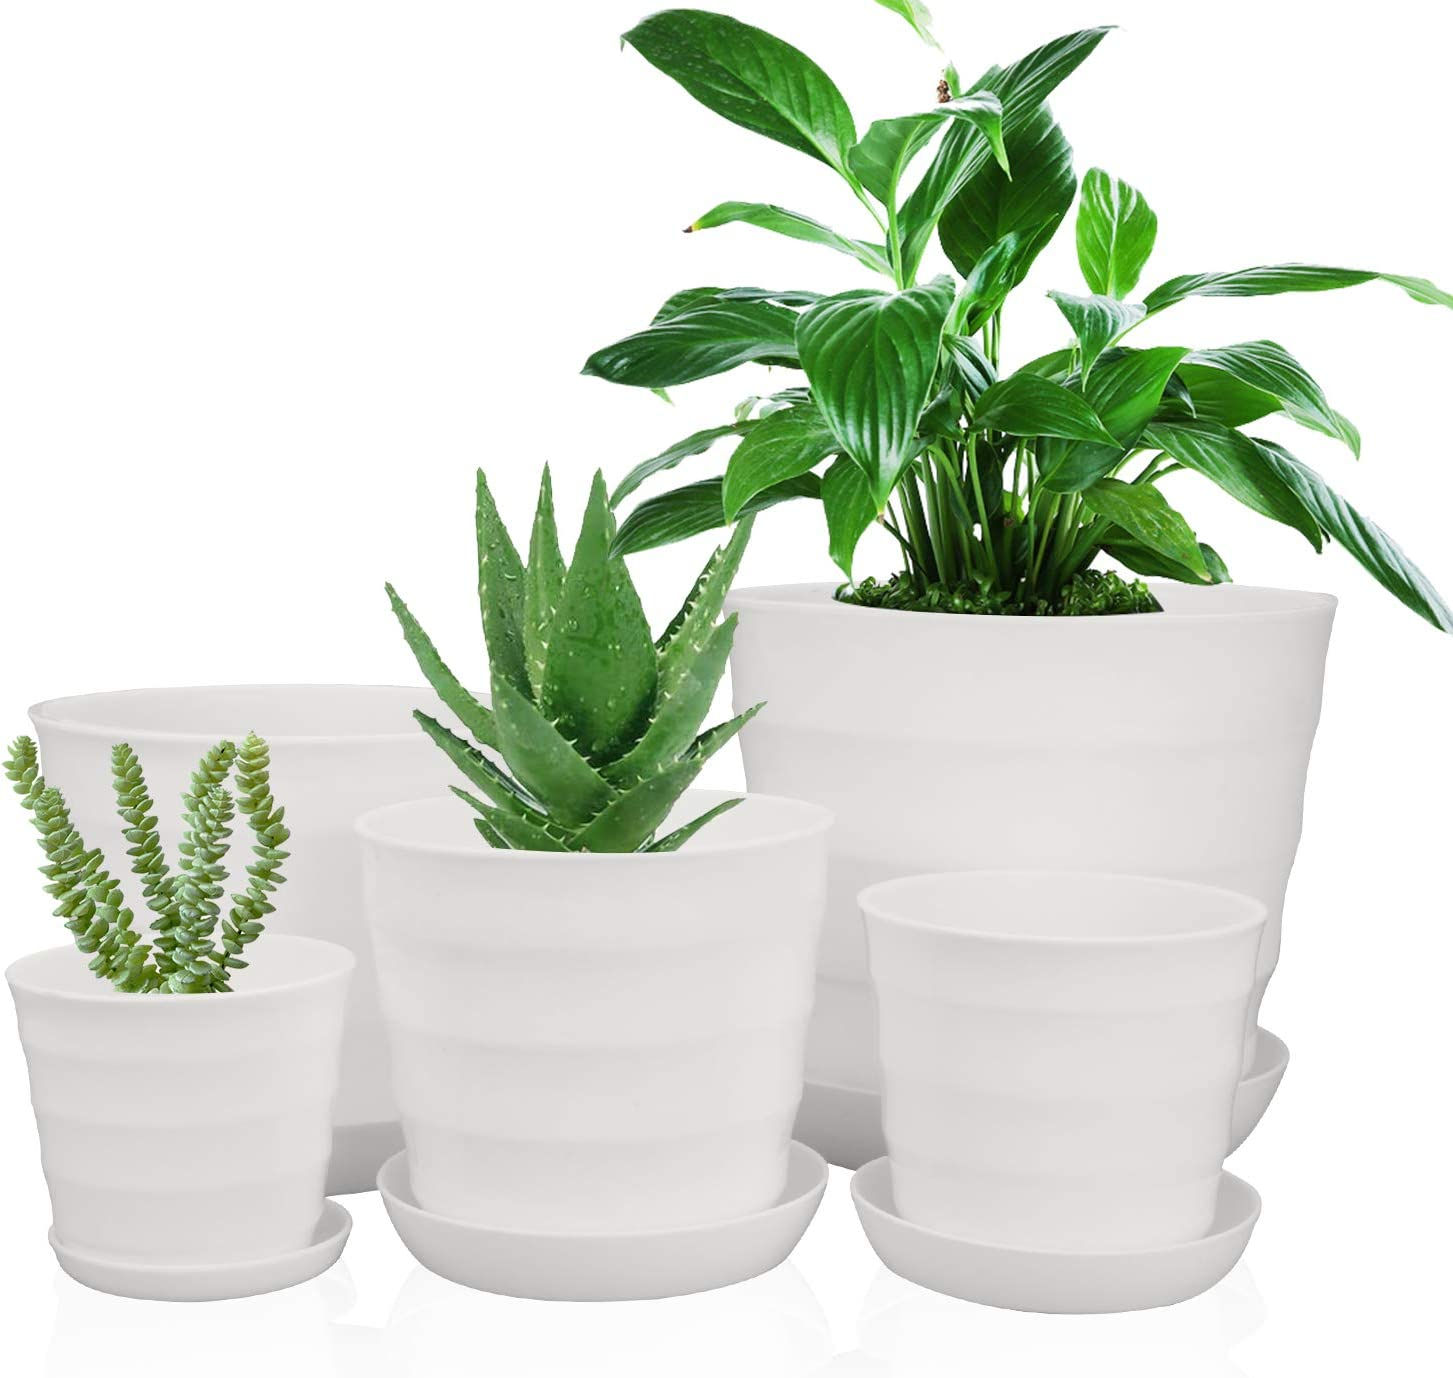 Plastic Plant Pots with Drainage Holes, Ufrount Gardening Containers, Flower Pots, Perfect for Garden/Yard/Kitchen/Flower/Succulents - Set of 10 (5 Sizes, Thread Shape)